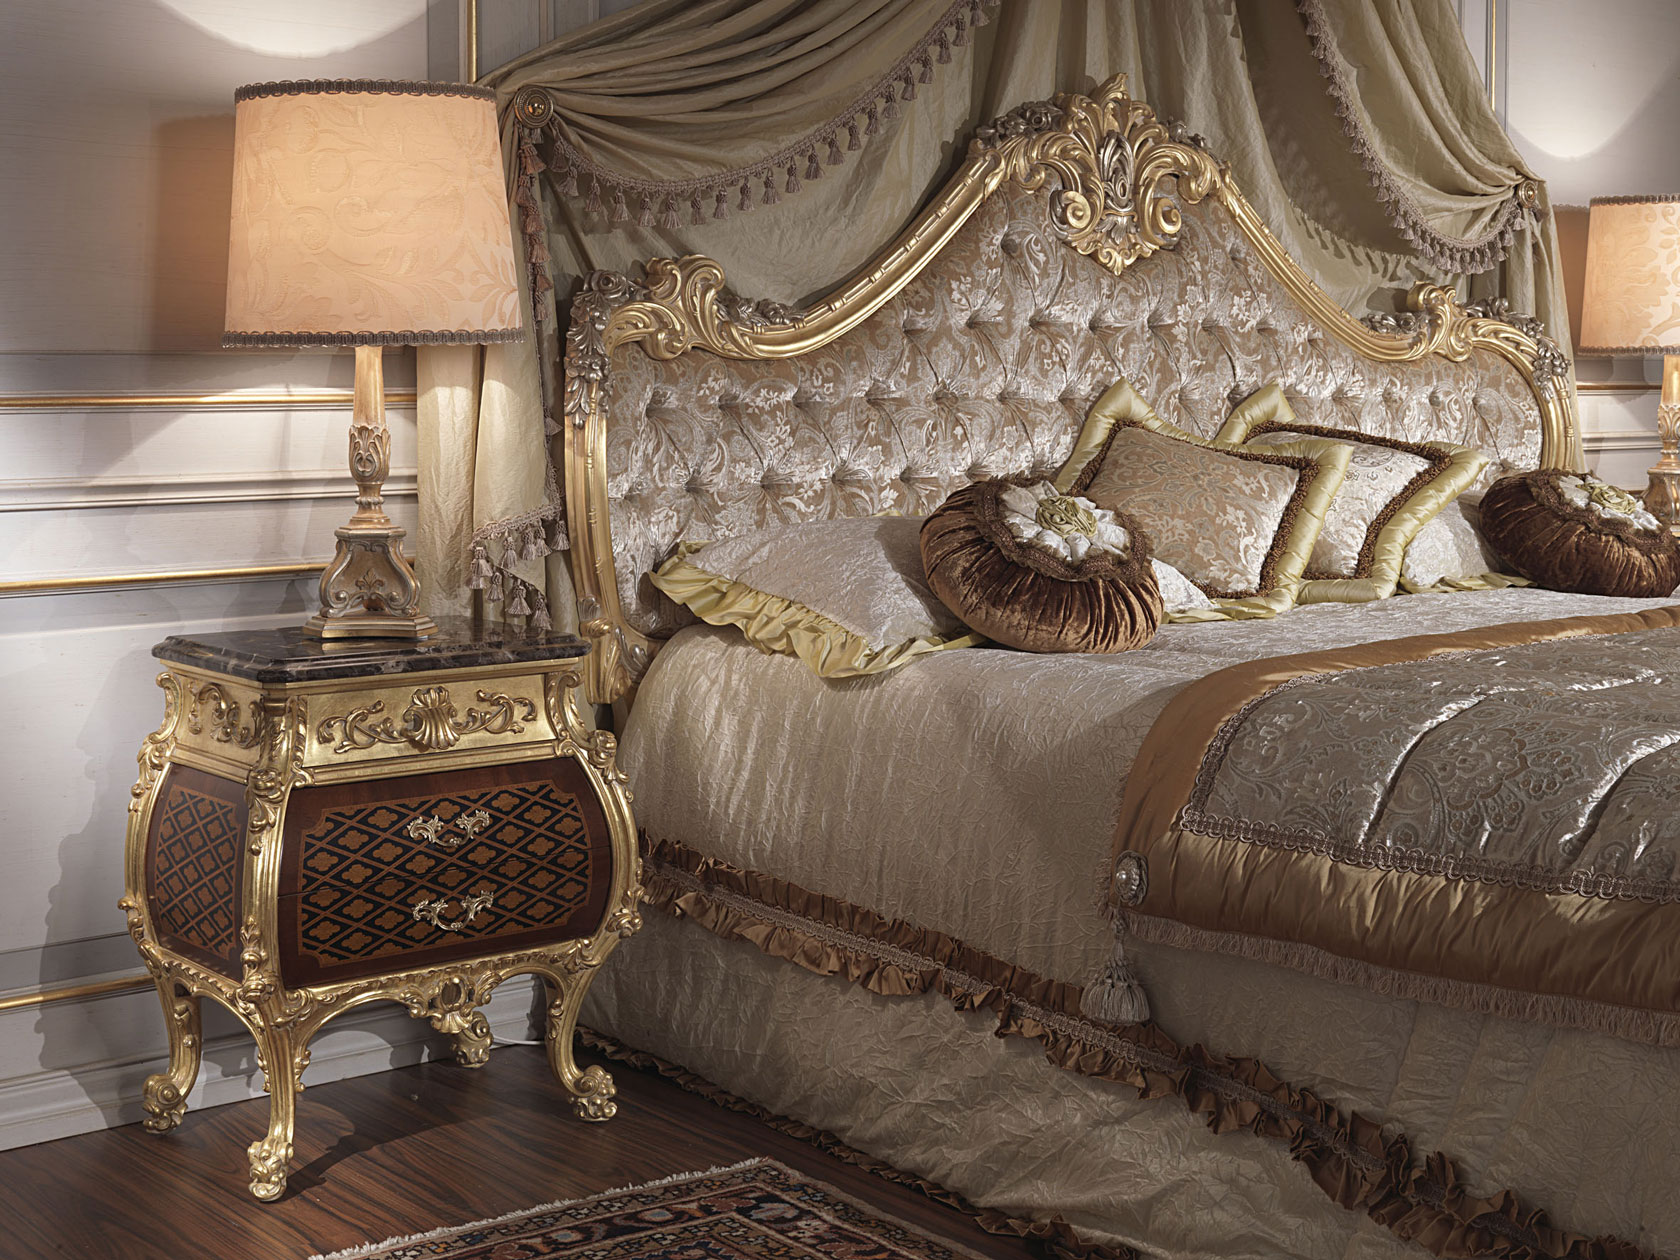 Louis Bedroom Furniture Louis Xv Style Bedroom Furniture Best Bedroom Ideas 2017